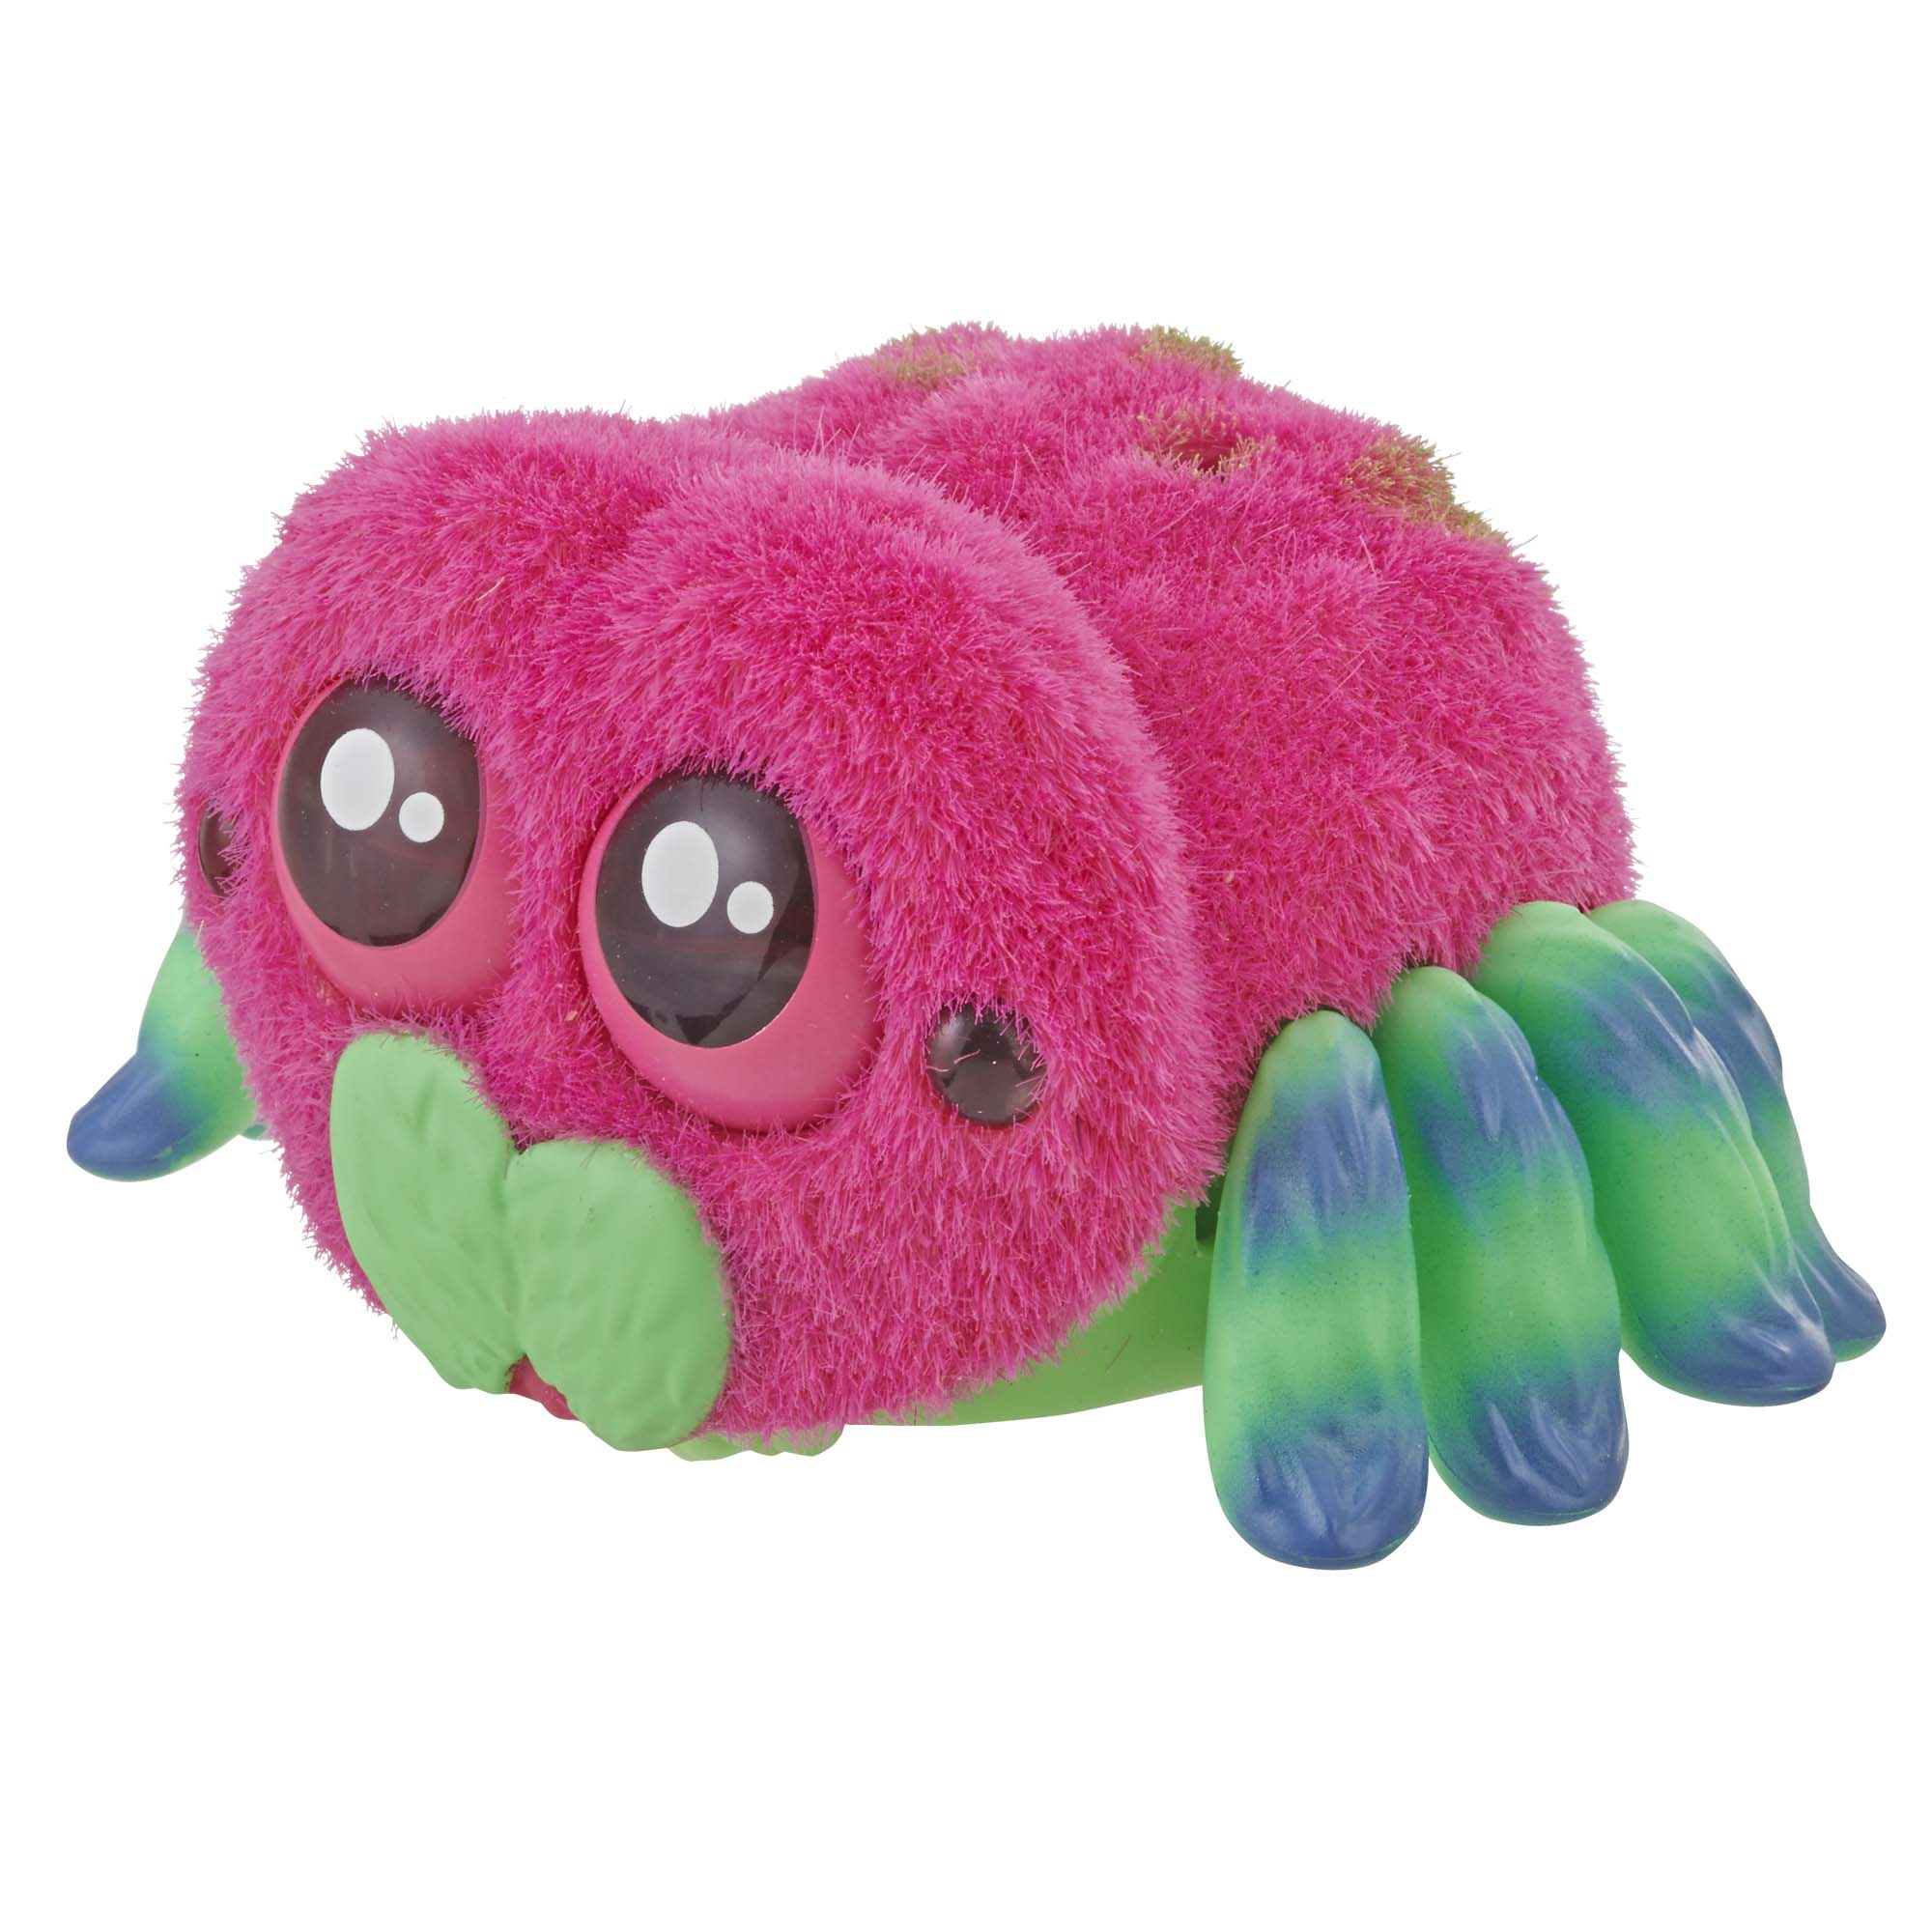 Yellies! Sammie; Voice-Activated Spider Pet; Ages 5 and up